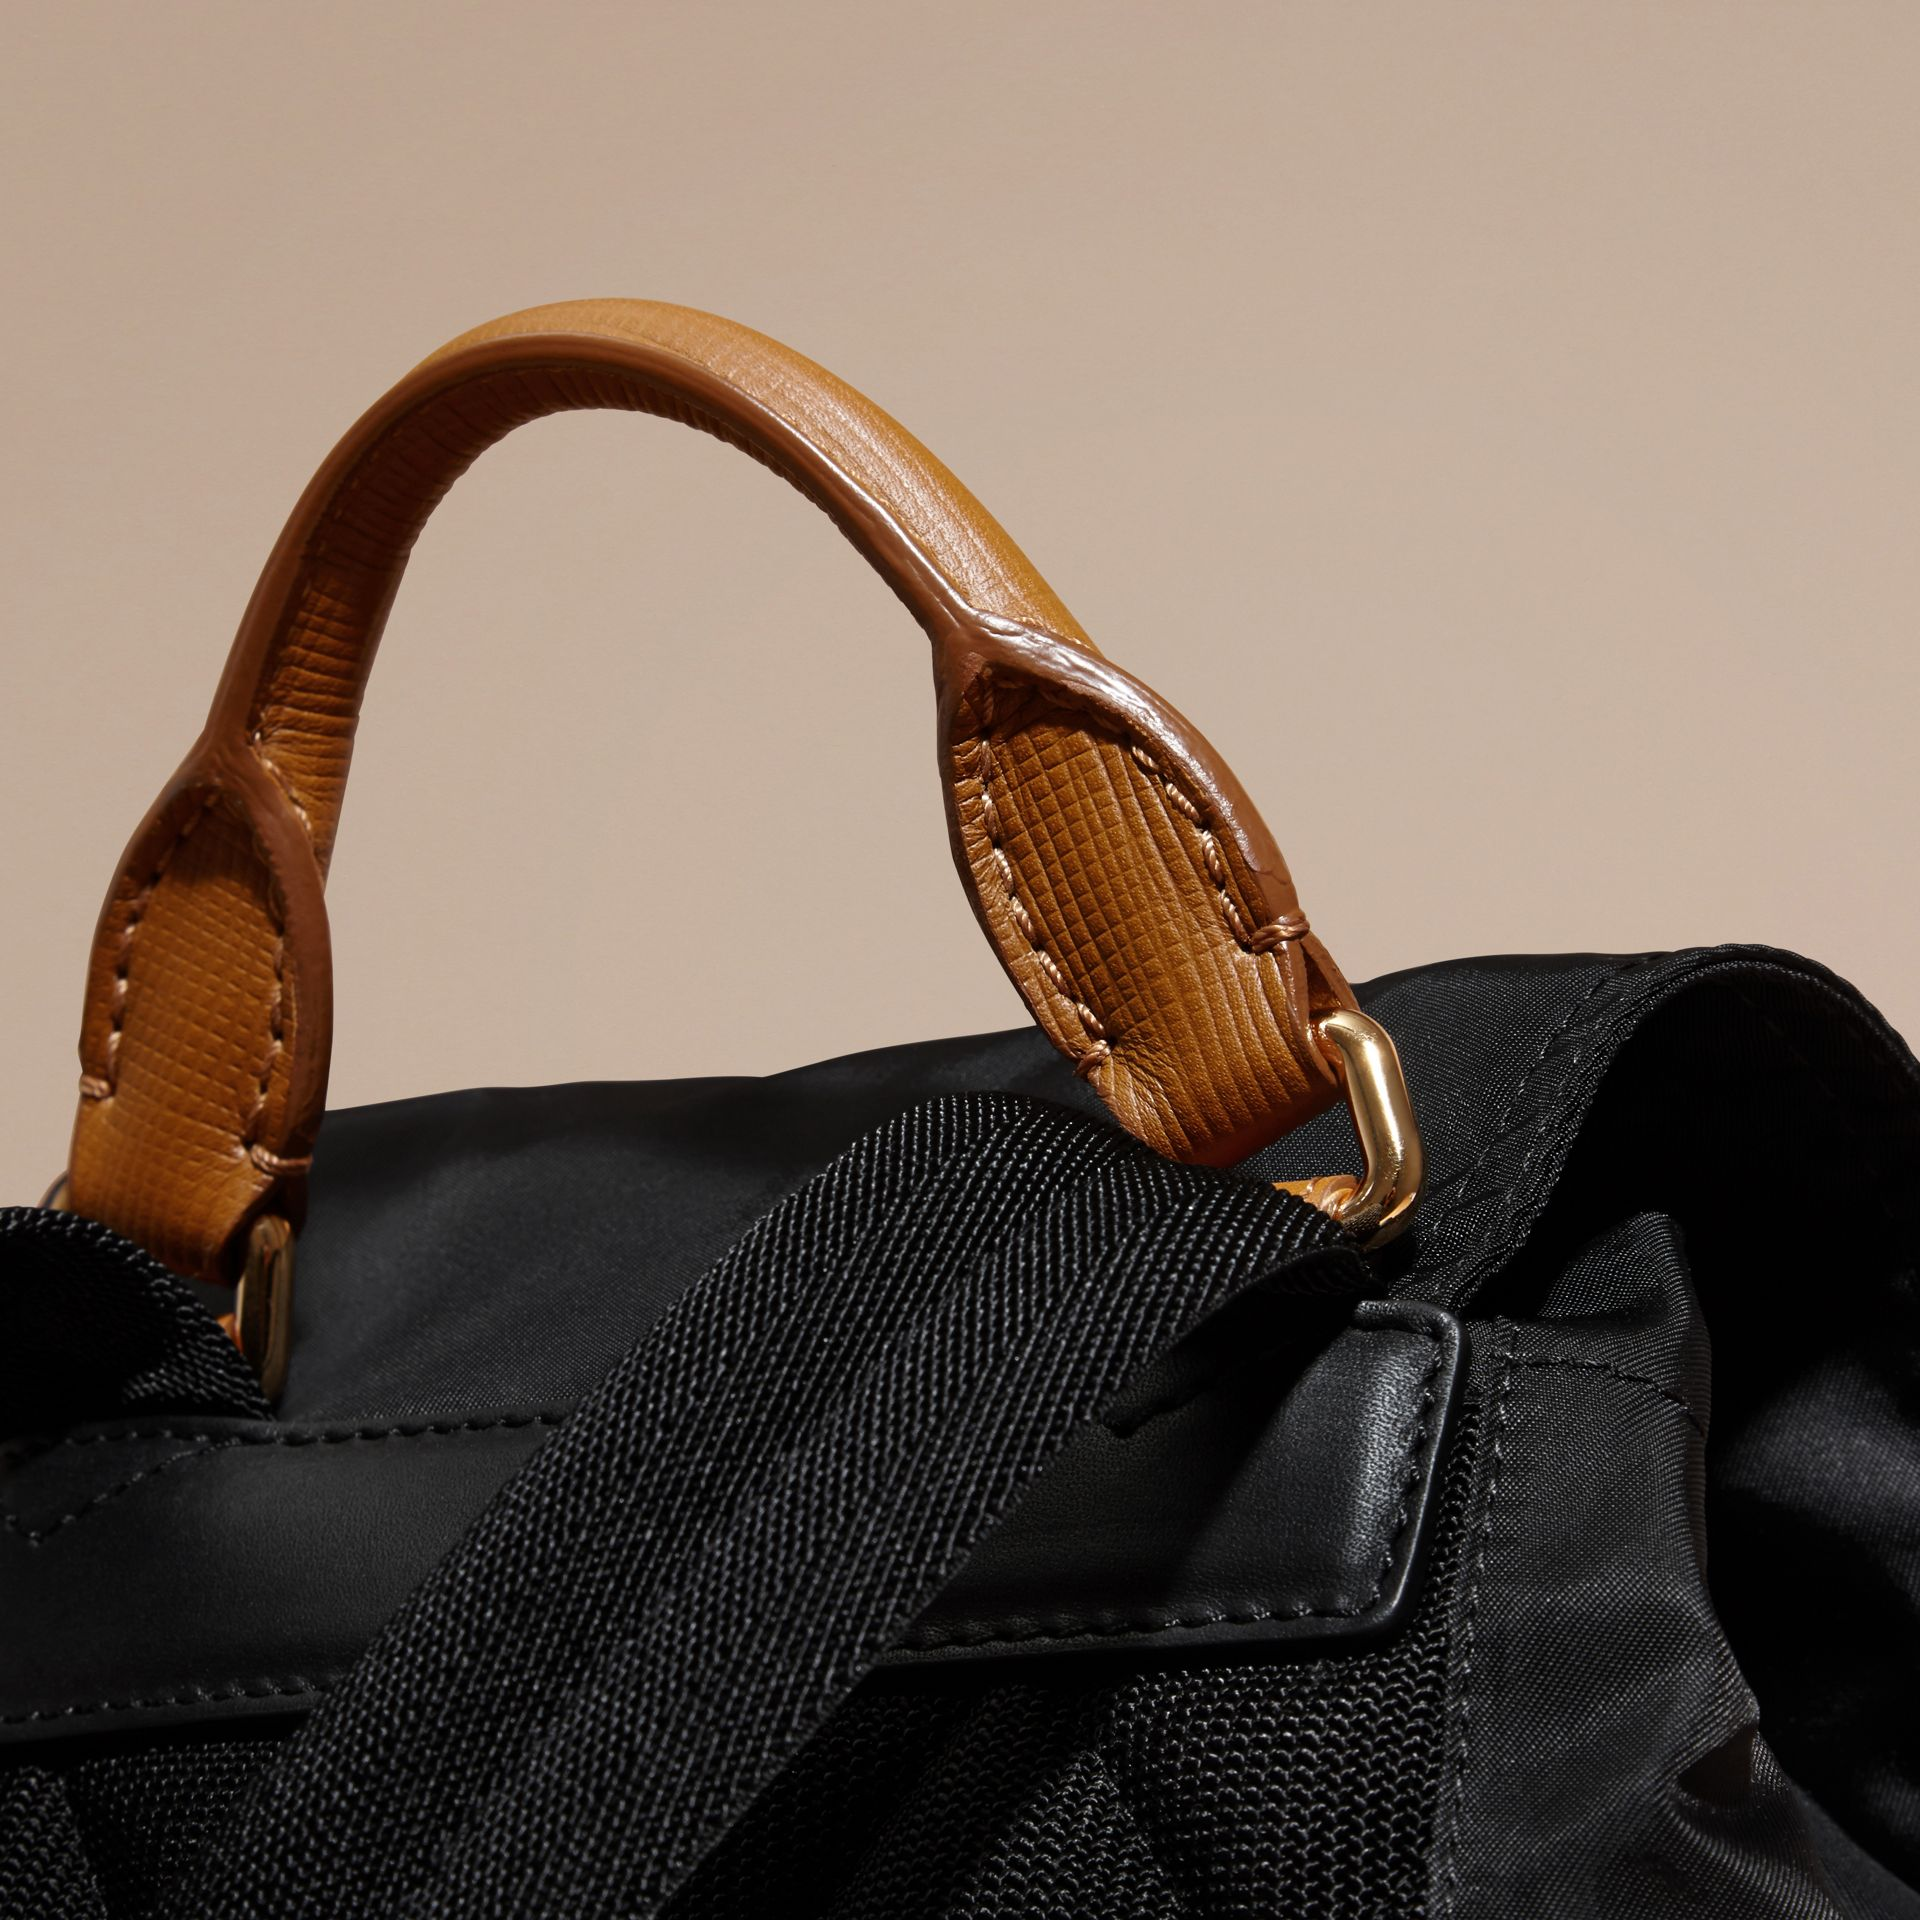 Sac The Rucksack moyen en nylon technique et cuir (Noir) - Femme | Burberry - photo de la galerie 5